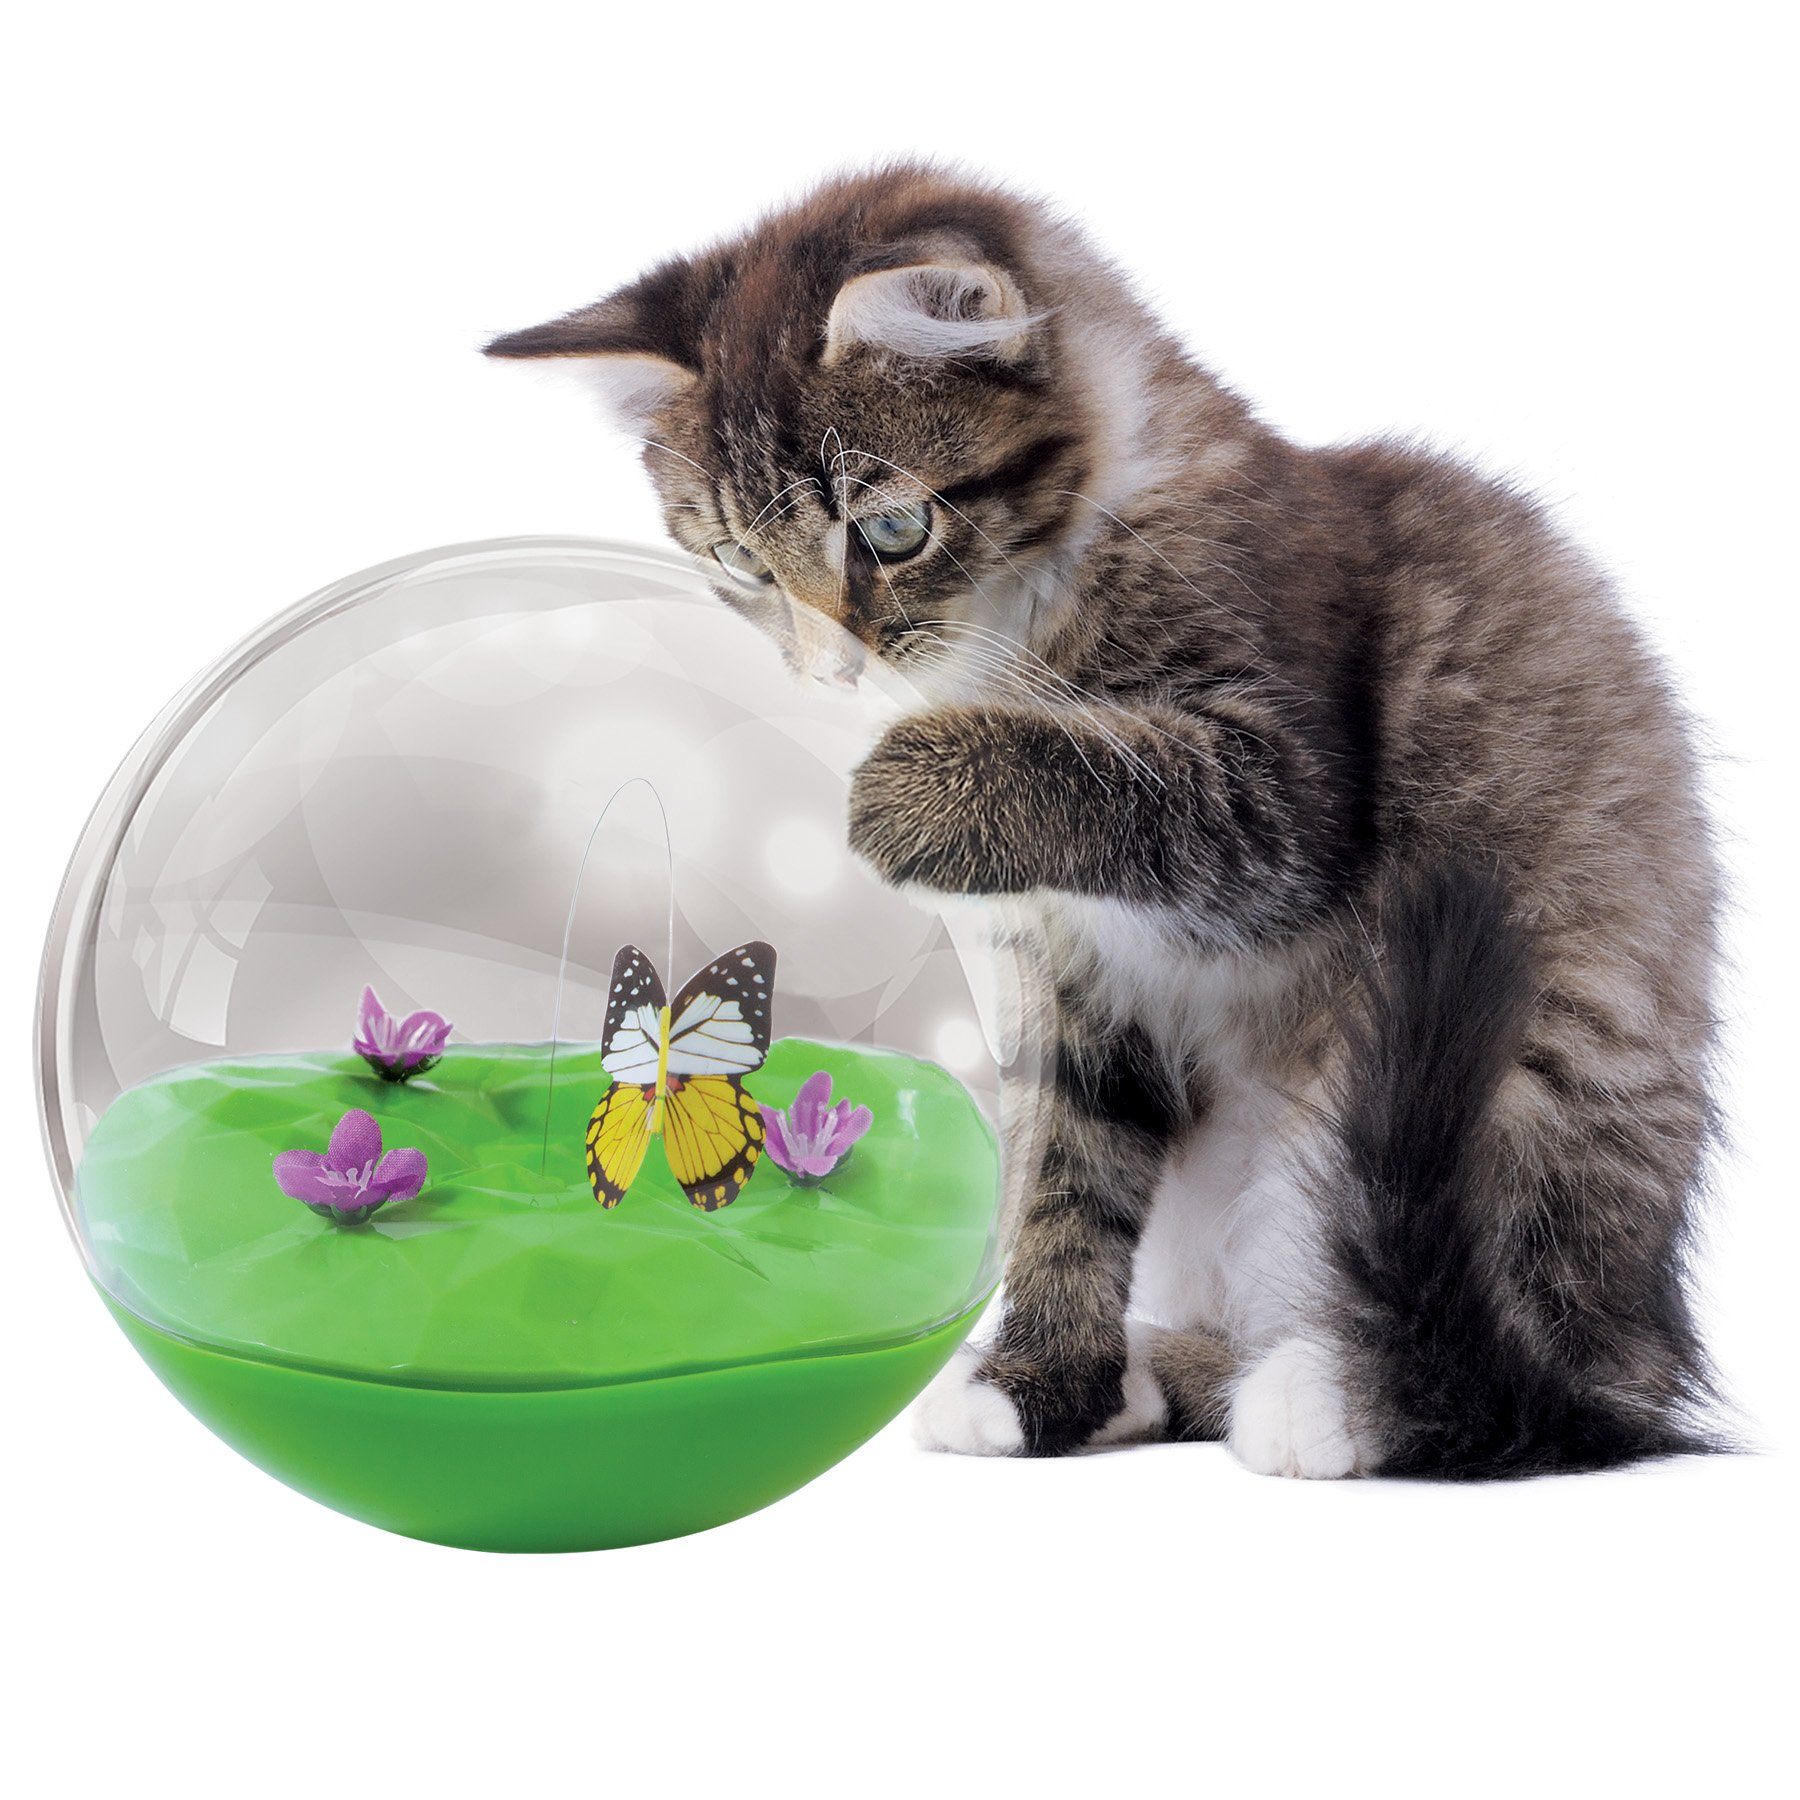 Petmate Jackson Galaxy Butterfly in a Ball Cat Toy by Petmate